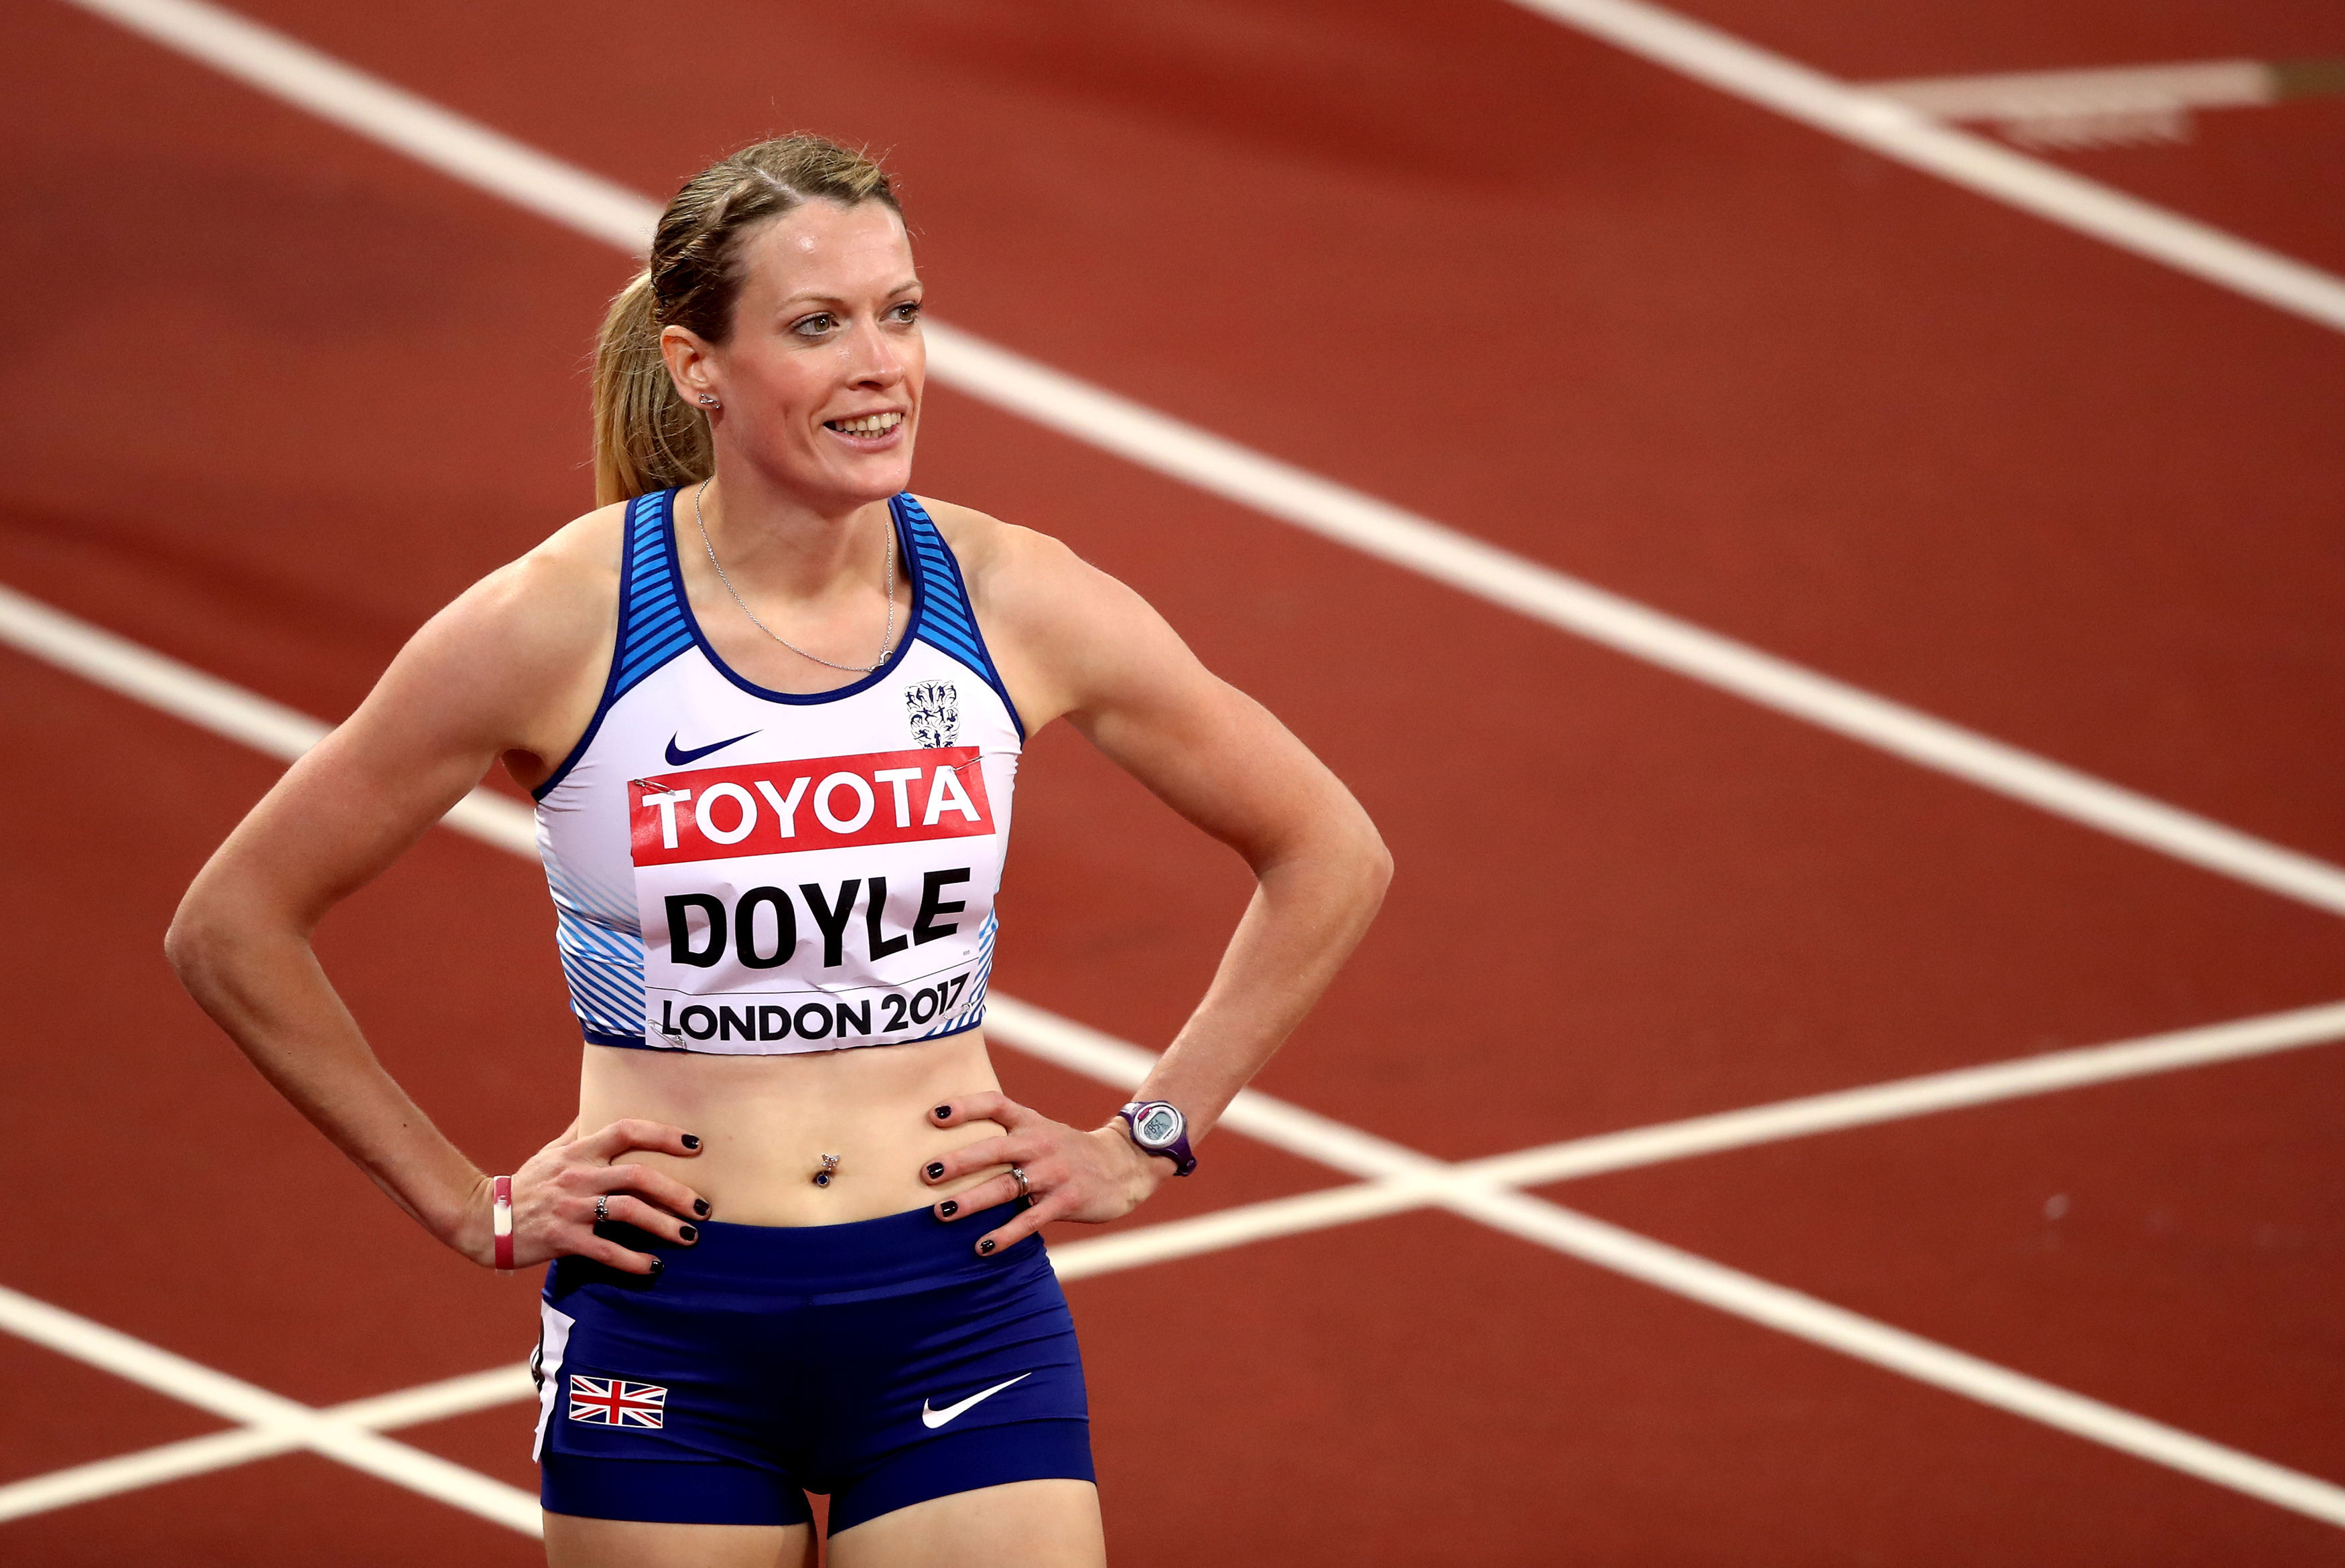 Great Britain's Eilidh Doyle after her Women's 400m Hurdles heat during day four of the 2017 IAAF World Championships at the London Stadium. PRESS ASSOCIATION Photo. Picture date: Monday August 7, 2017. See PA story ATHLETICS World. Photo credit should read: John Walton/PA Wire. RESTRICTIONS: Editorial use only. No transmission of sound or moving images and no video simulation